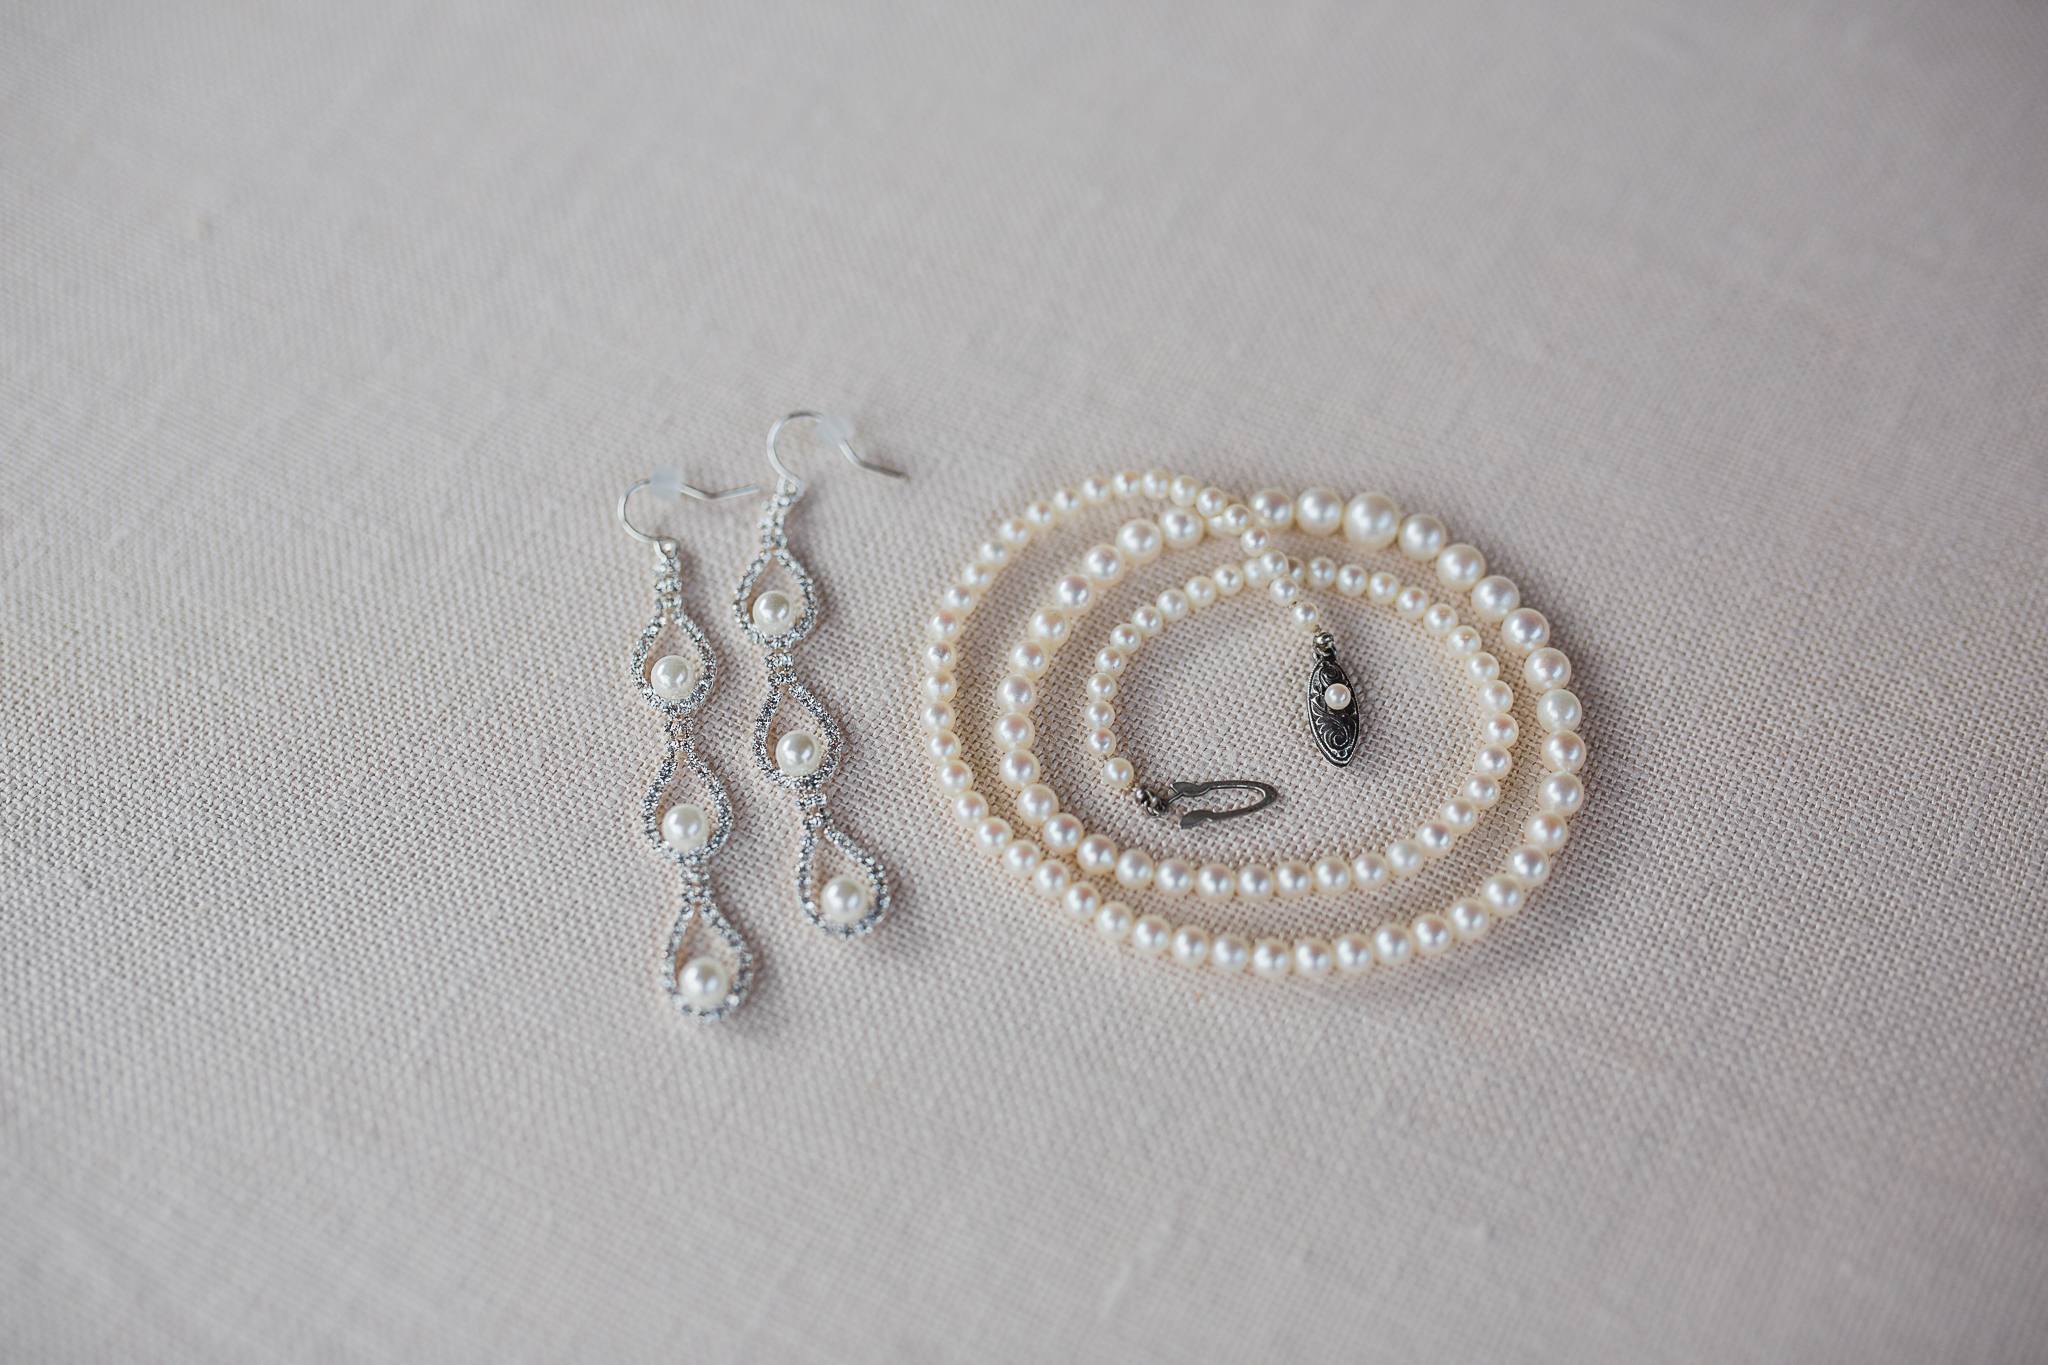 detail shot of brides jewelry on wedding day